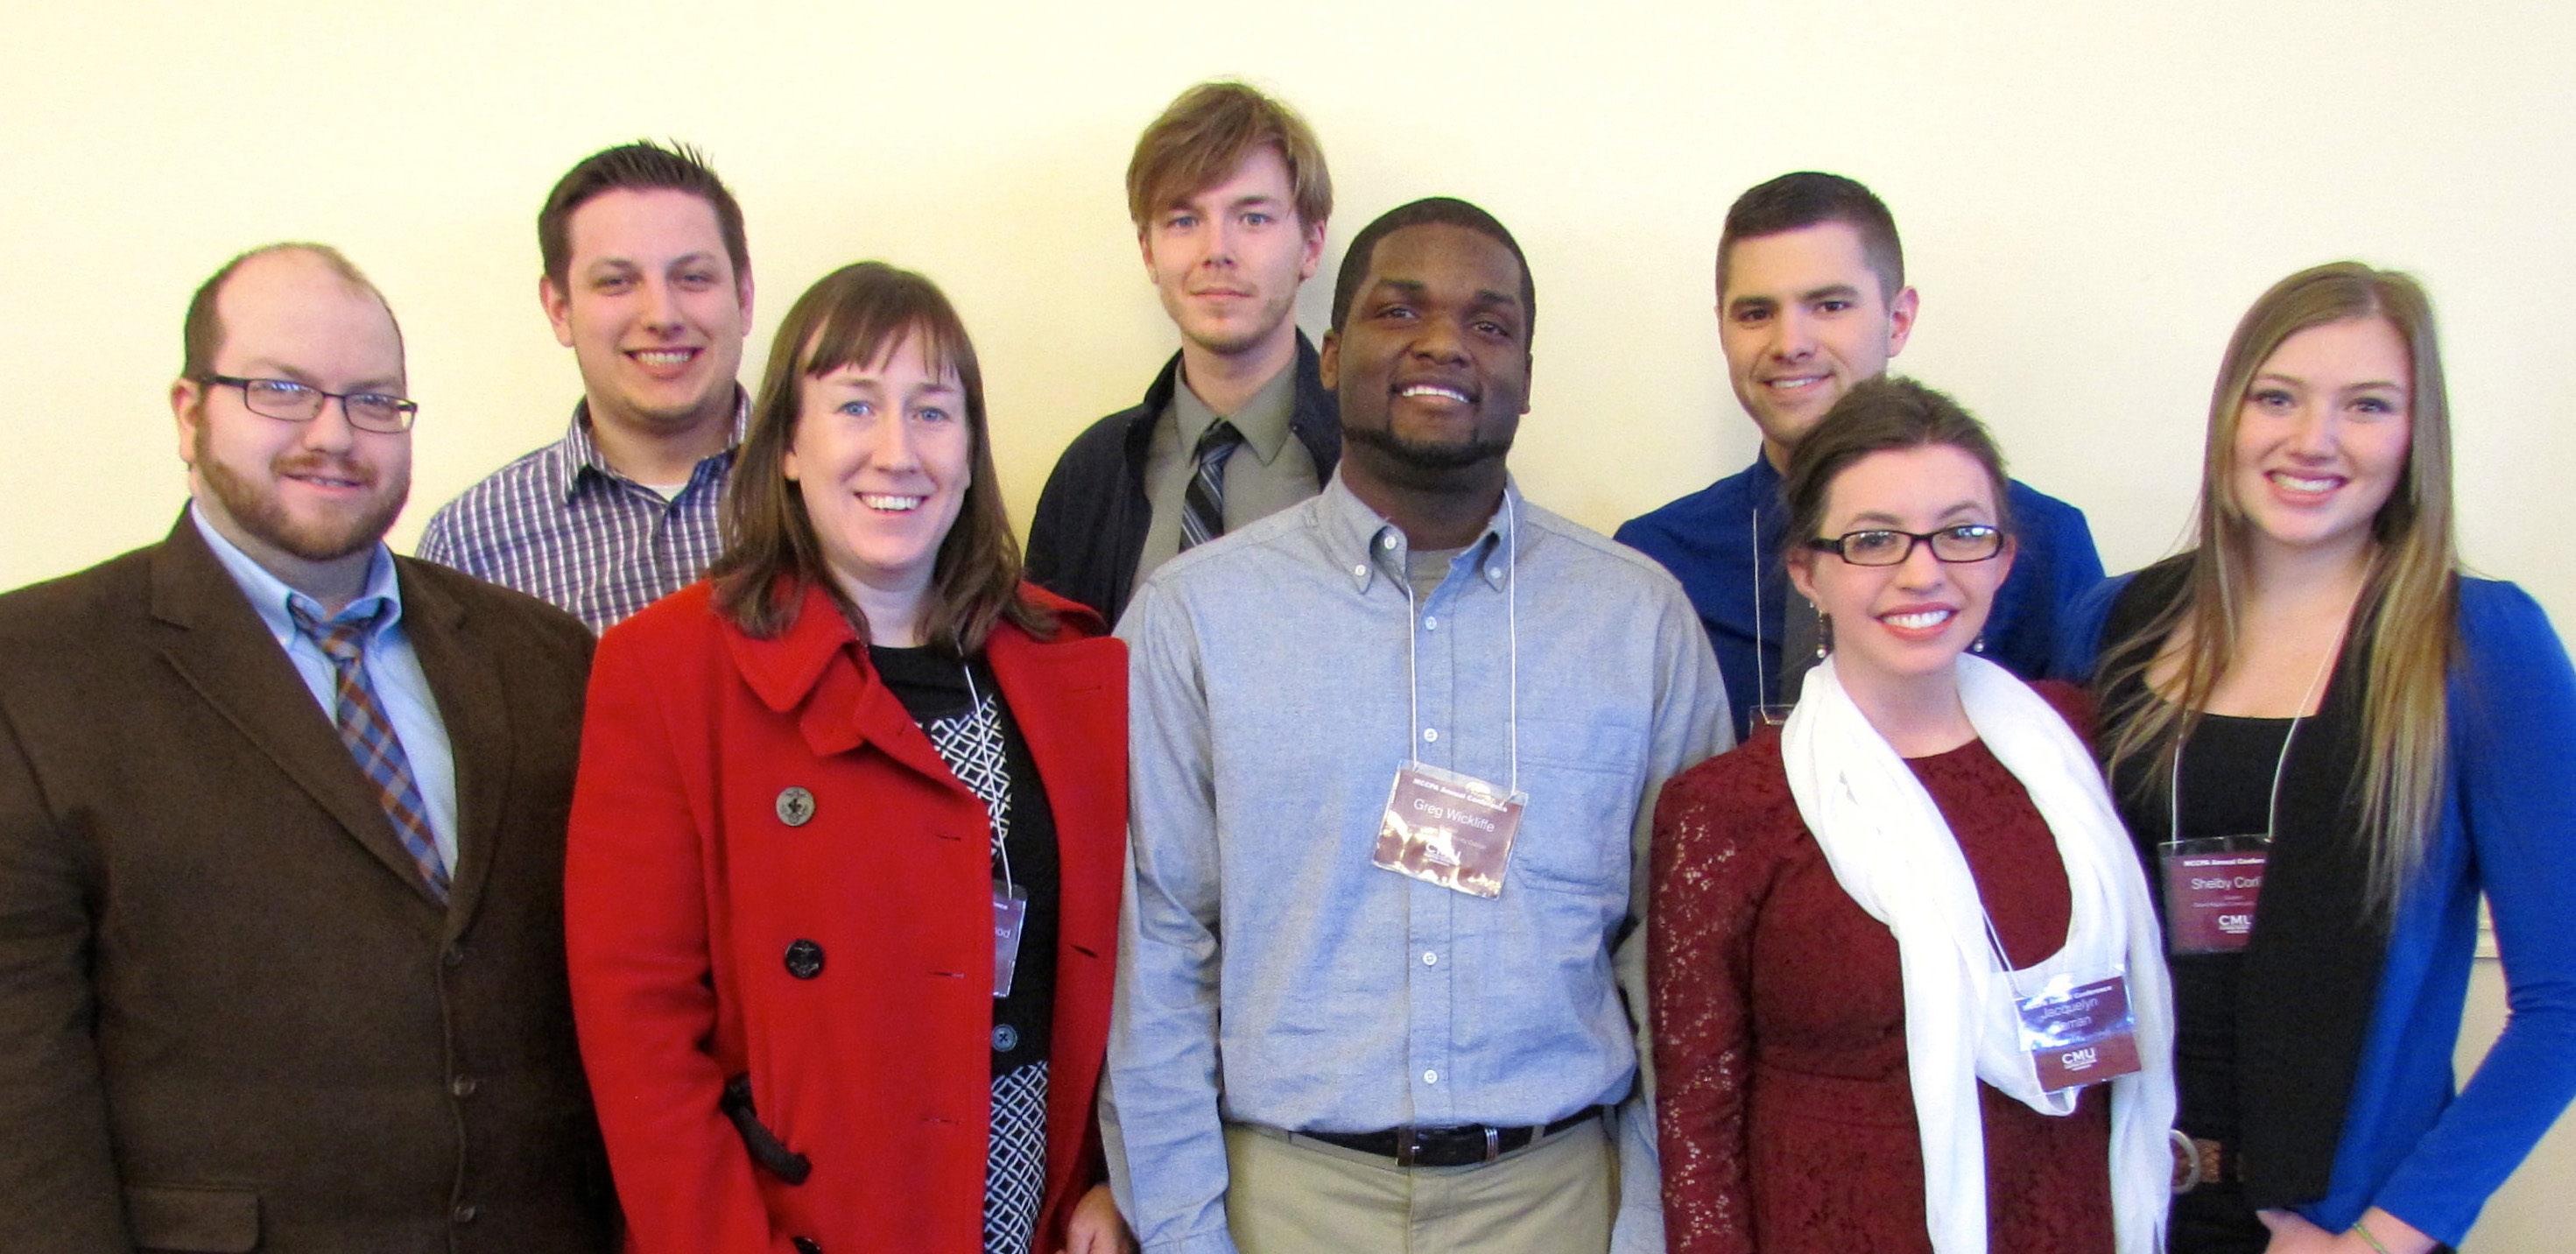 From left to right, Web Editor Chris Powers, Sports Editor Zach Watkins, Faculty Adviser Jennifer Ackerman-Haywood, Editor-in-Chief Joshua Vissers, Greg Wickliffe, Multimedia Editor Clayton Cummins, News Editor Jacquelyn Zeman and A&E Editor Shelby Corliss, The Collegiate's group of representatives at Central Michigan University.